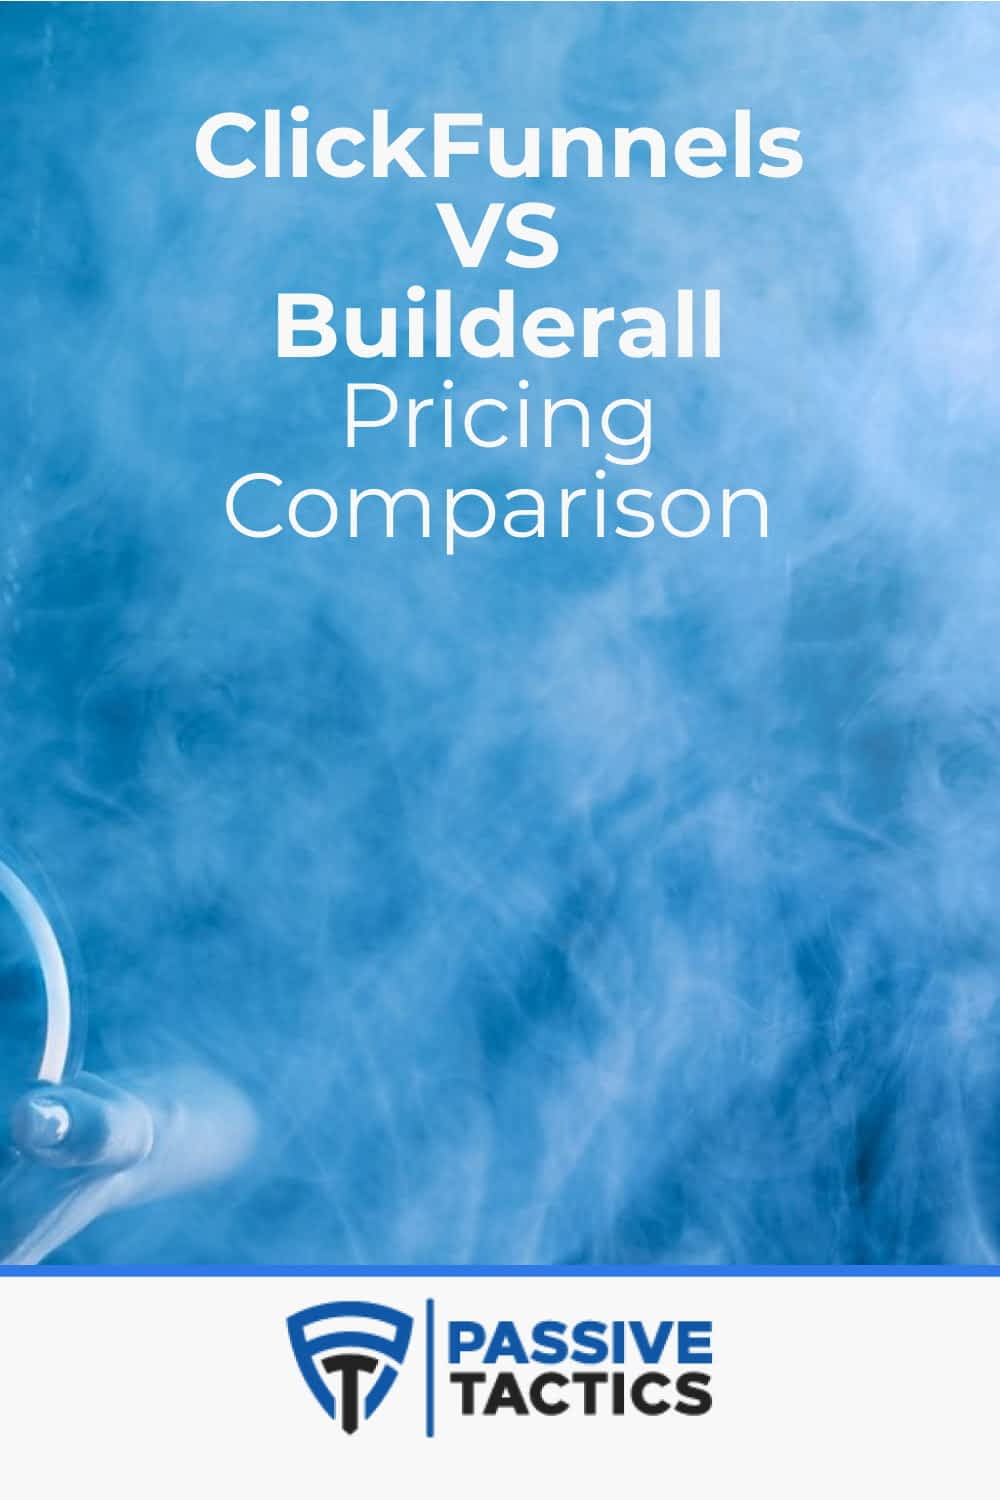 ClickFunnels VS Builderall: Which is better for Your sales funnels?